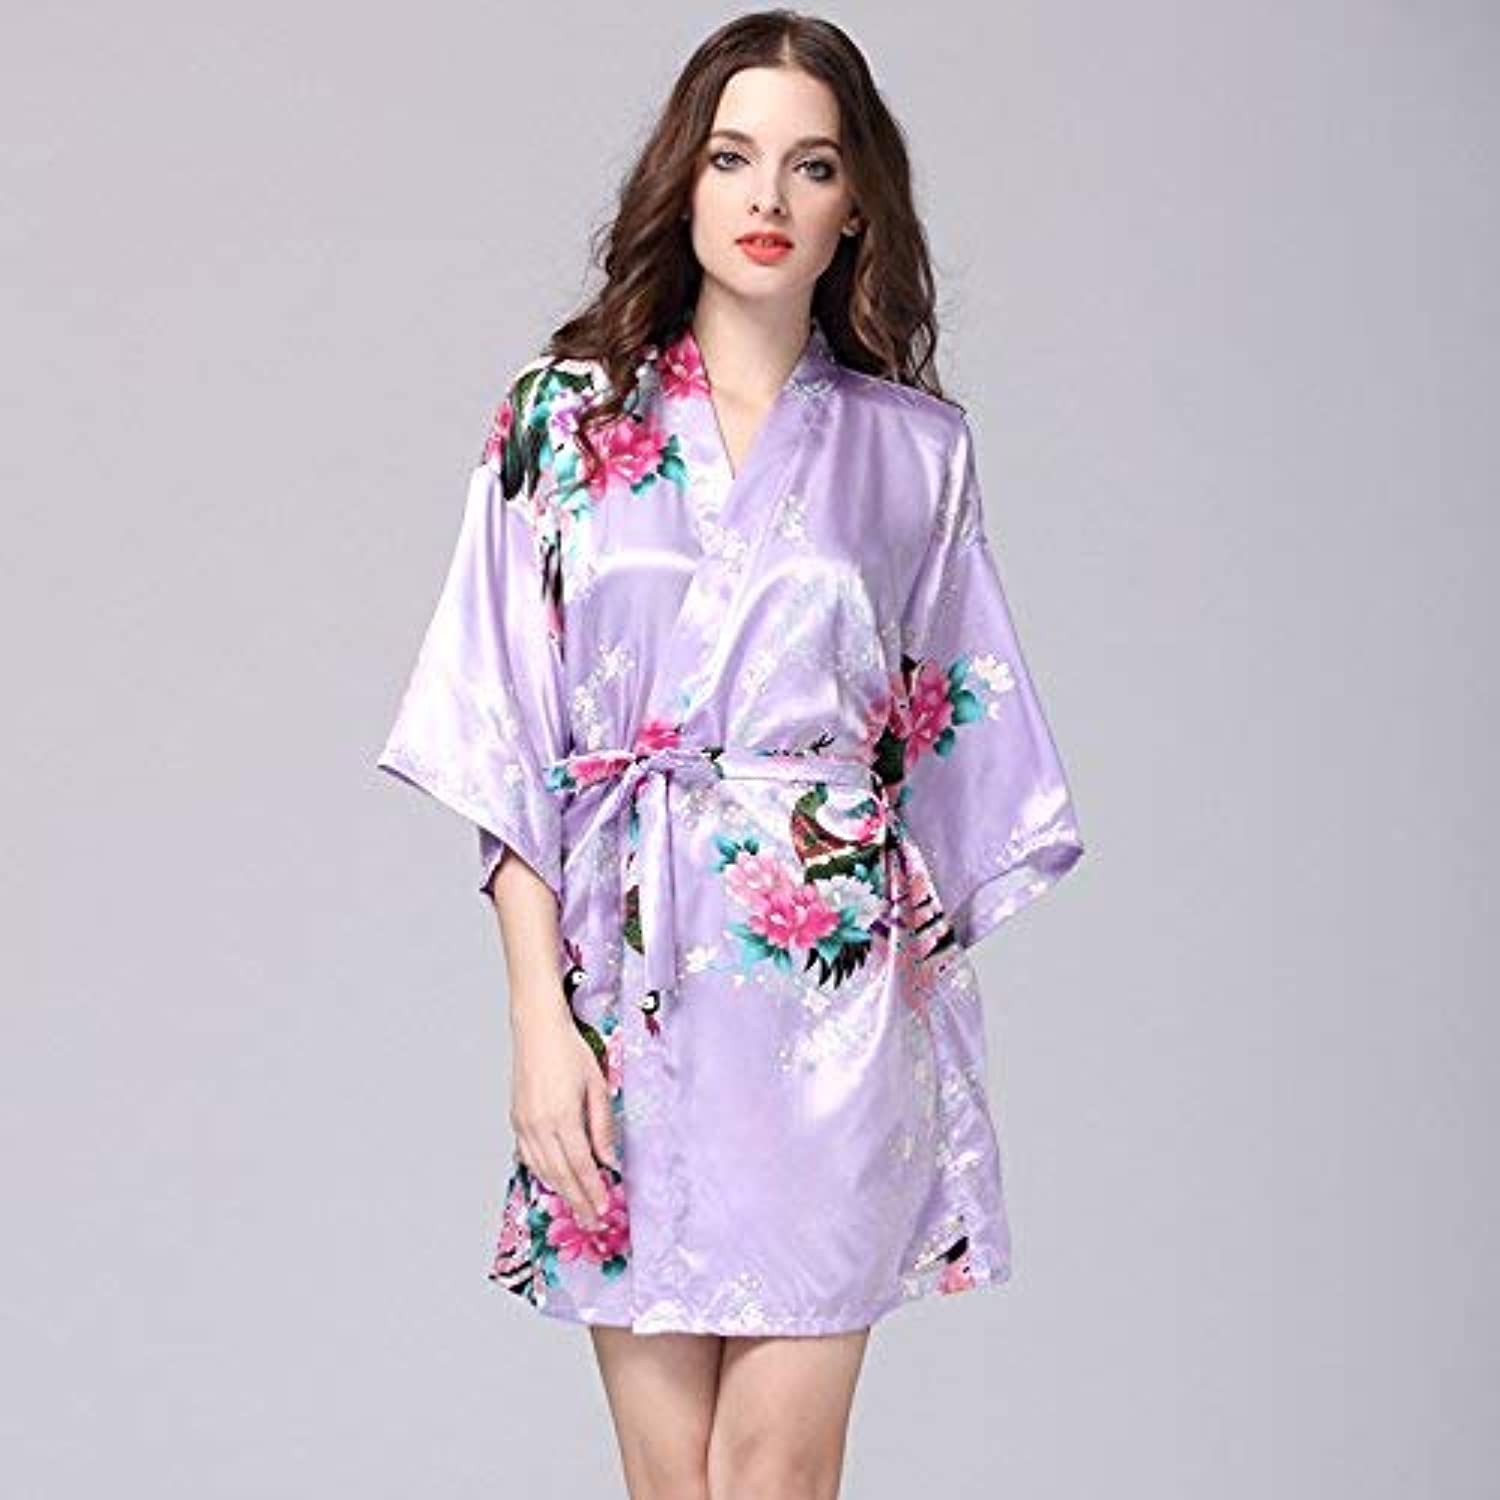 DALAI Simulation Silk Nightgown Ladies Summer Sleeve Peacock Pajamas Bathrobe Large Size Home Service (color   Light Purple, Size   L) (color   Light Purple, Size   Large)